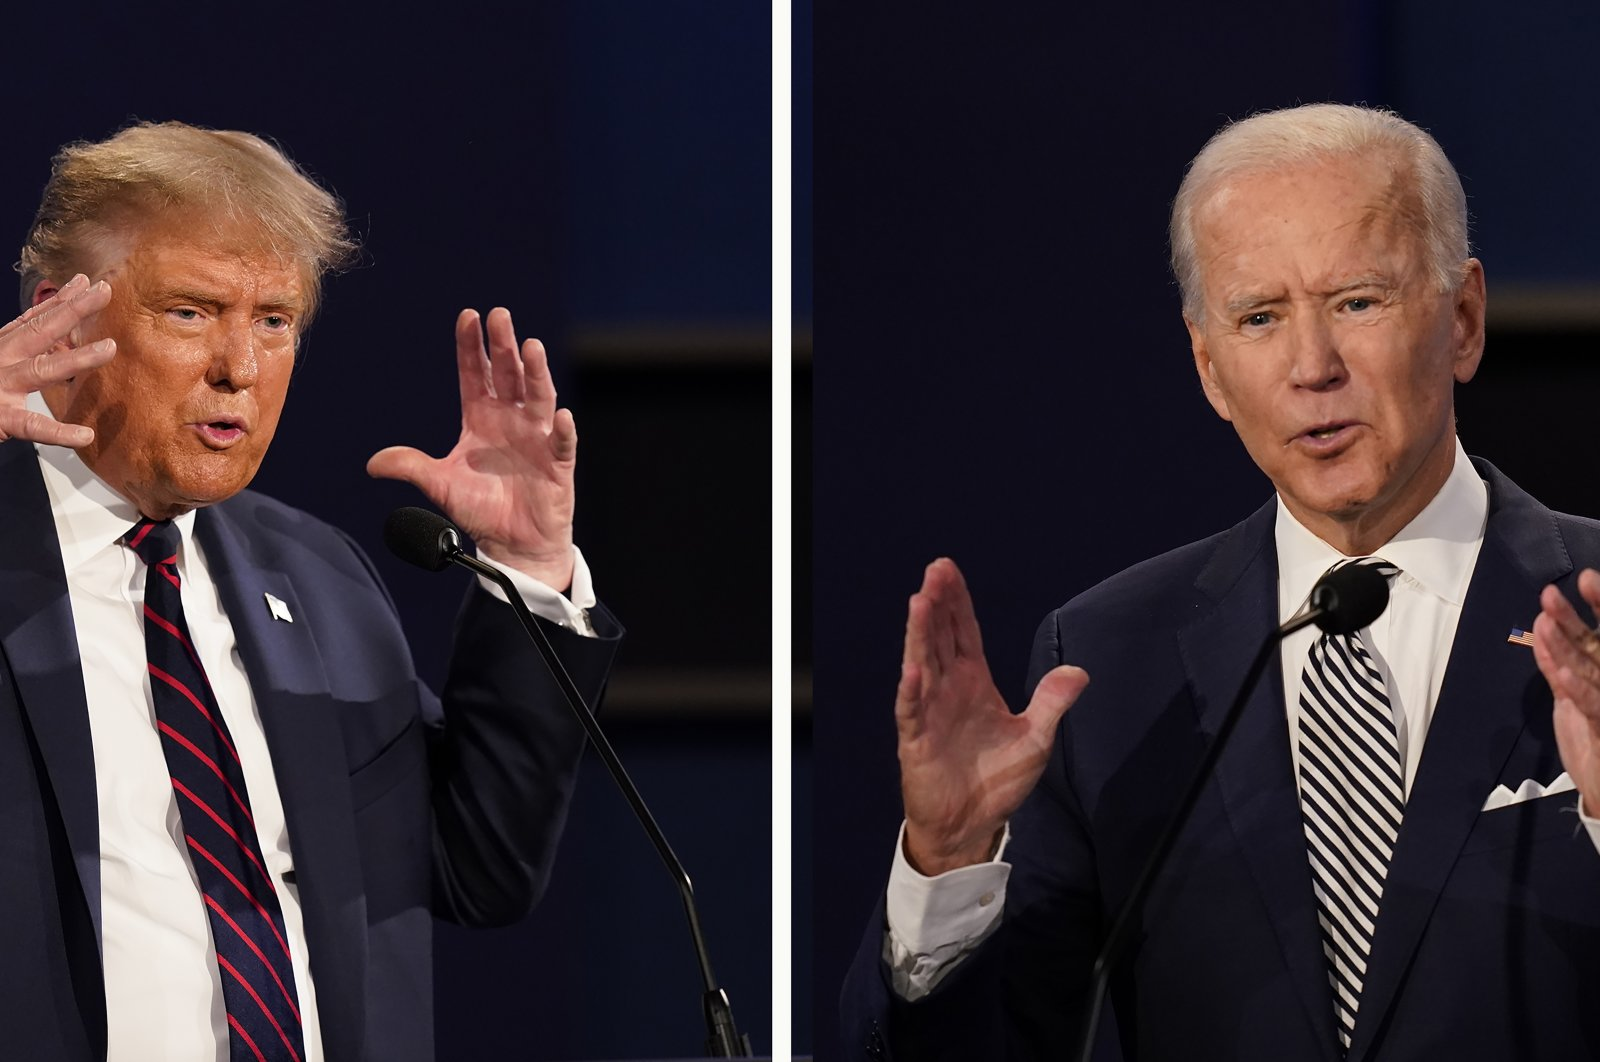 U.S. President Donald Trump (L) and former Vice President Joe Biden during the first presidential debate at Case Western University and Cleveland Clinic, in Cleveland, Ohio, U.S., Sept. 29, 2020. (AP Photo)